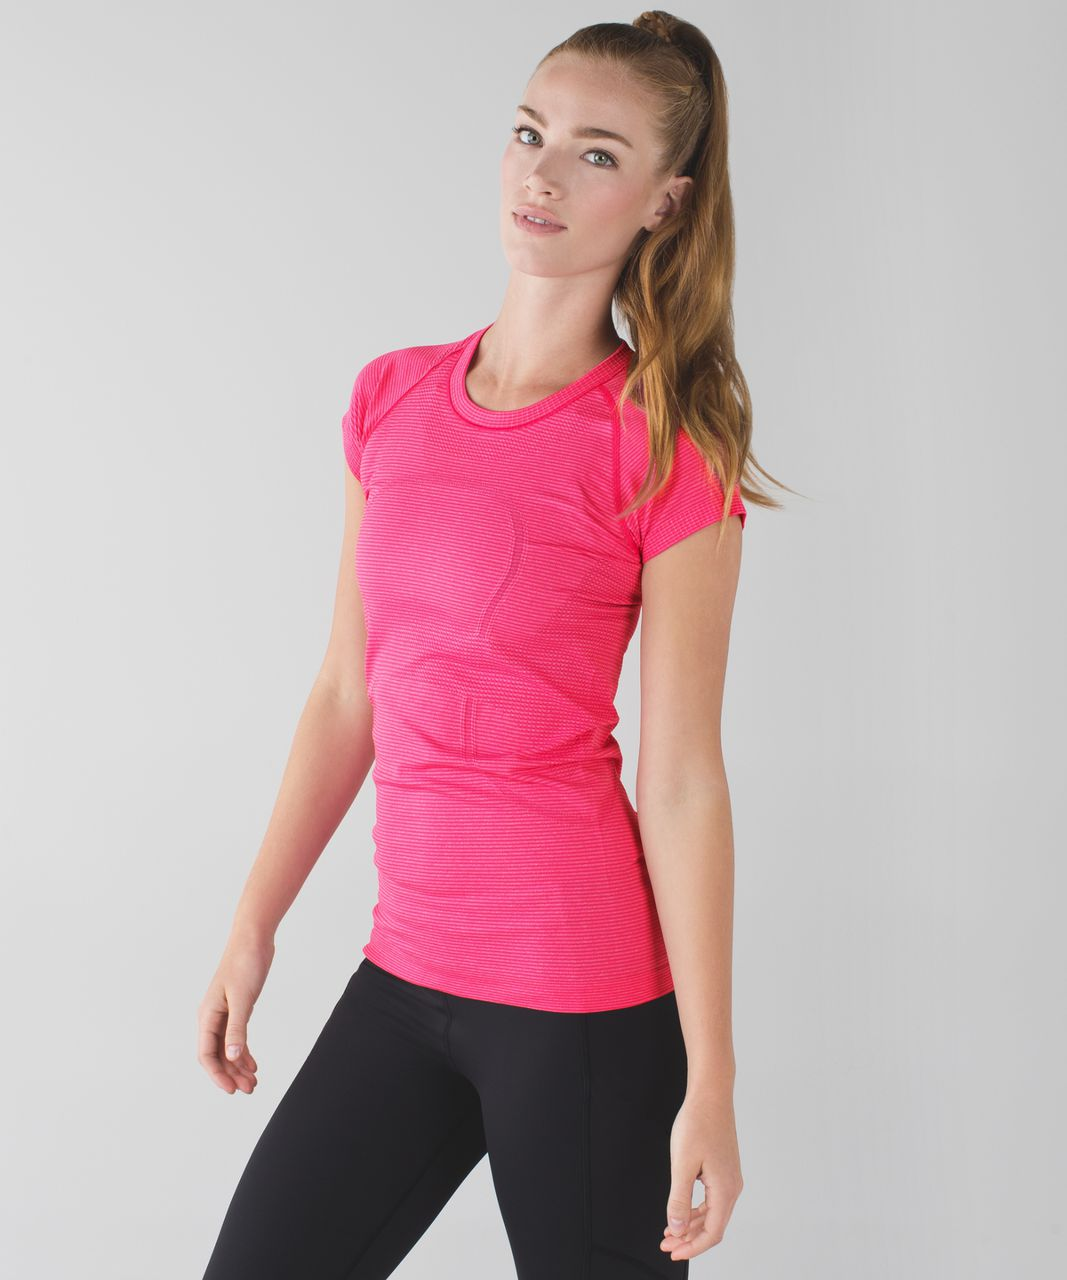 Lululemon Swiftly Tech Short Sleeve Crew - Heathered Jewelled Magenta (First Release)